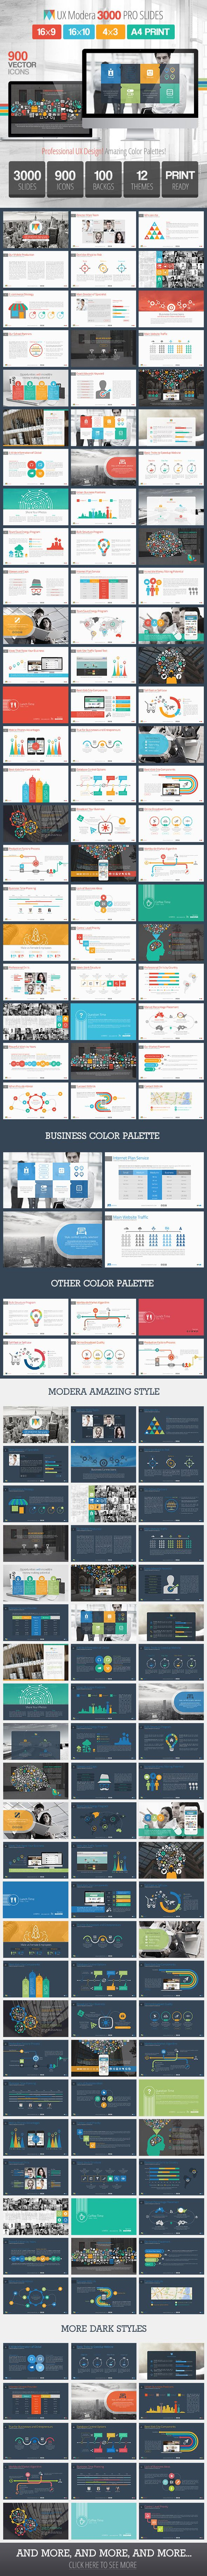 UX Modera Presentation Template for Keynote | #keynote #keynotetemplate | Download: http://graphicriver.net/item/ux-modera-presentation-template-for-keynote/9319493?ref=ksioks